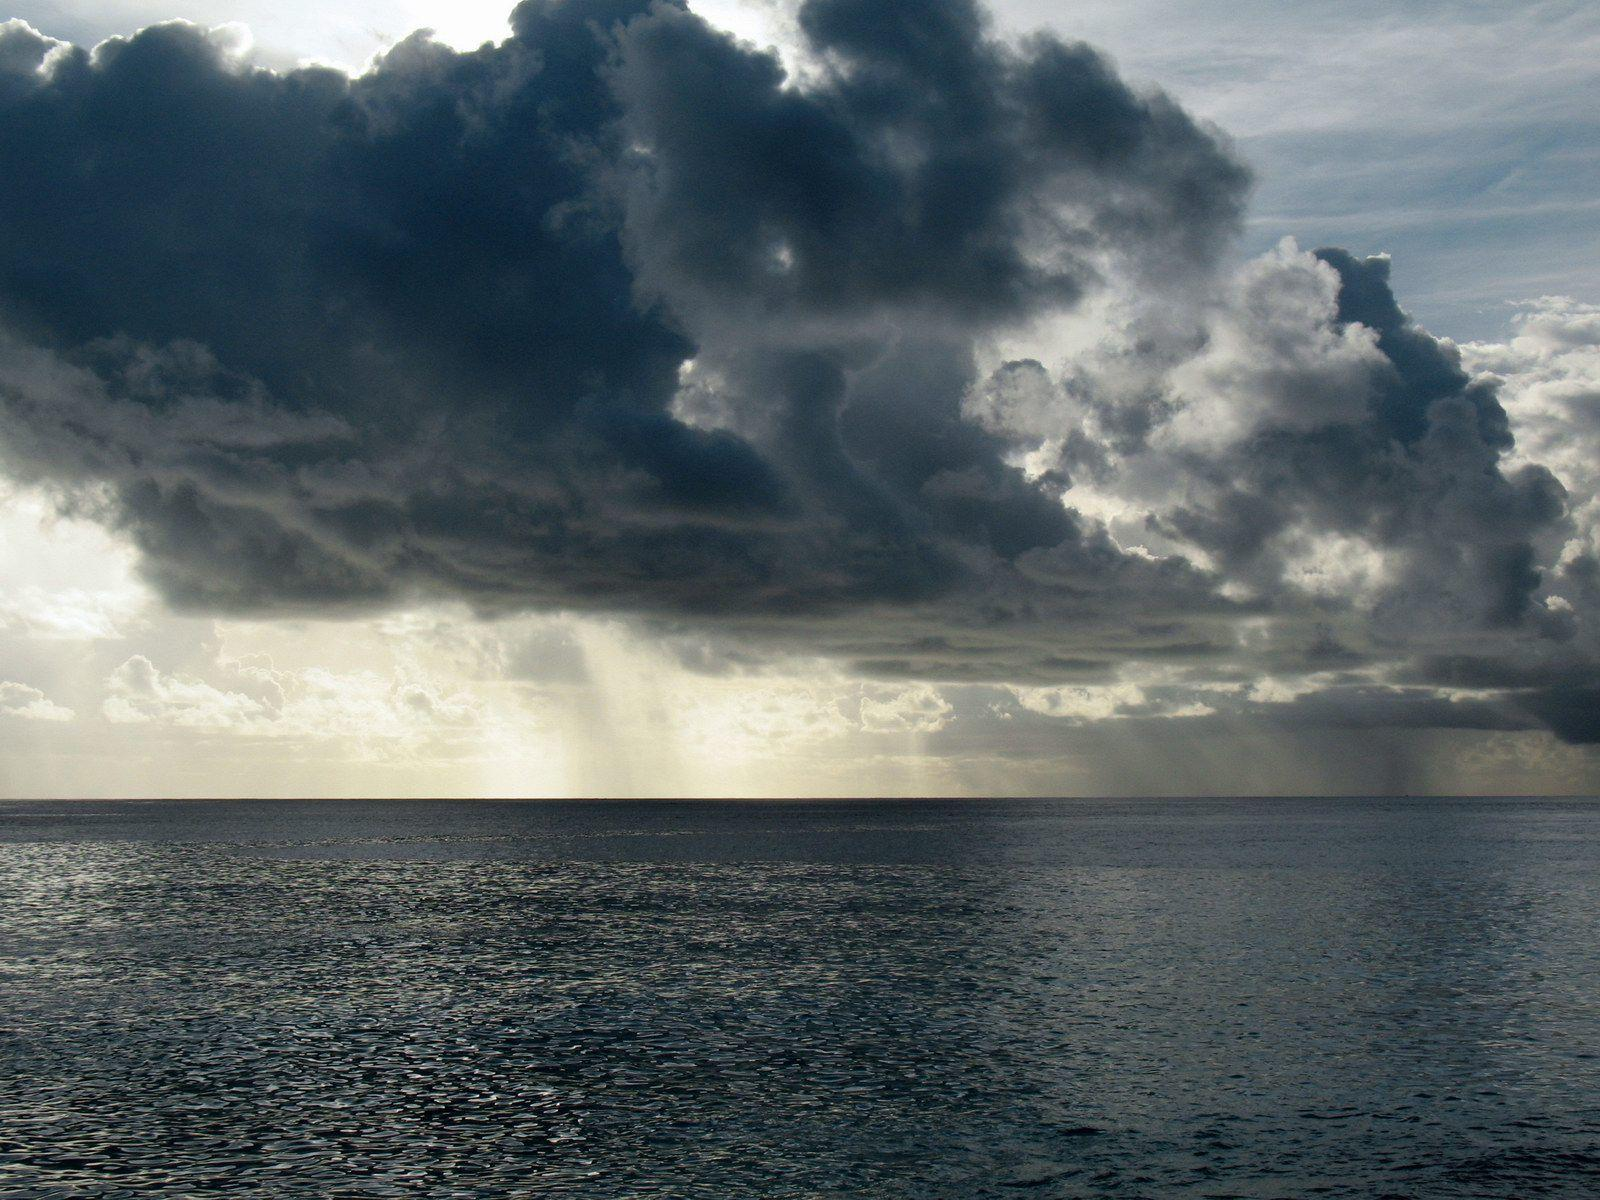 Stormy Weather, Indian Ocean, Maldives